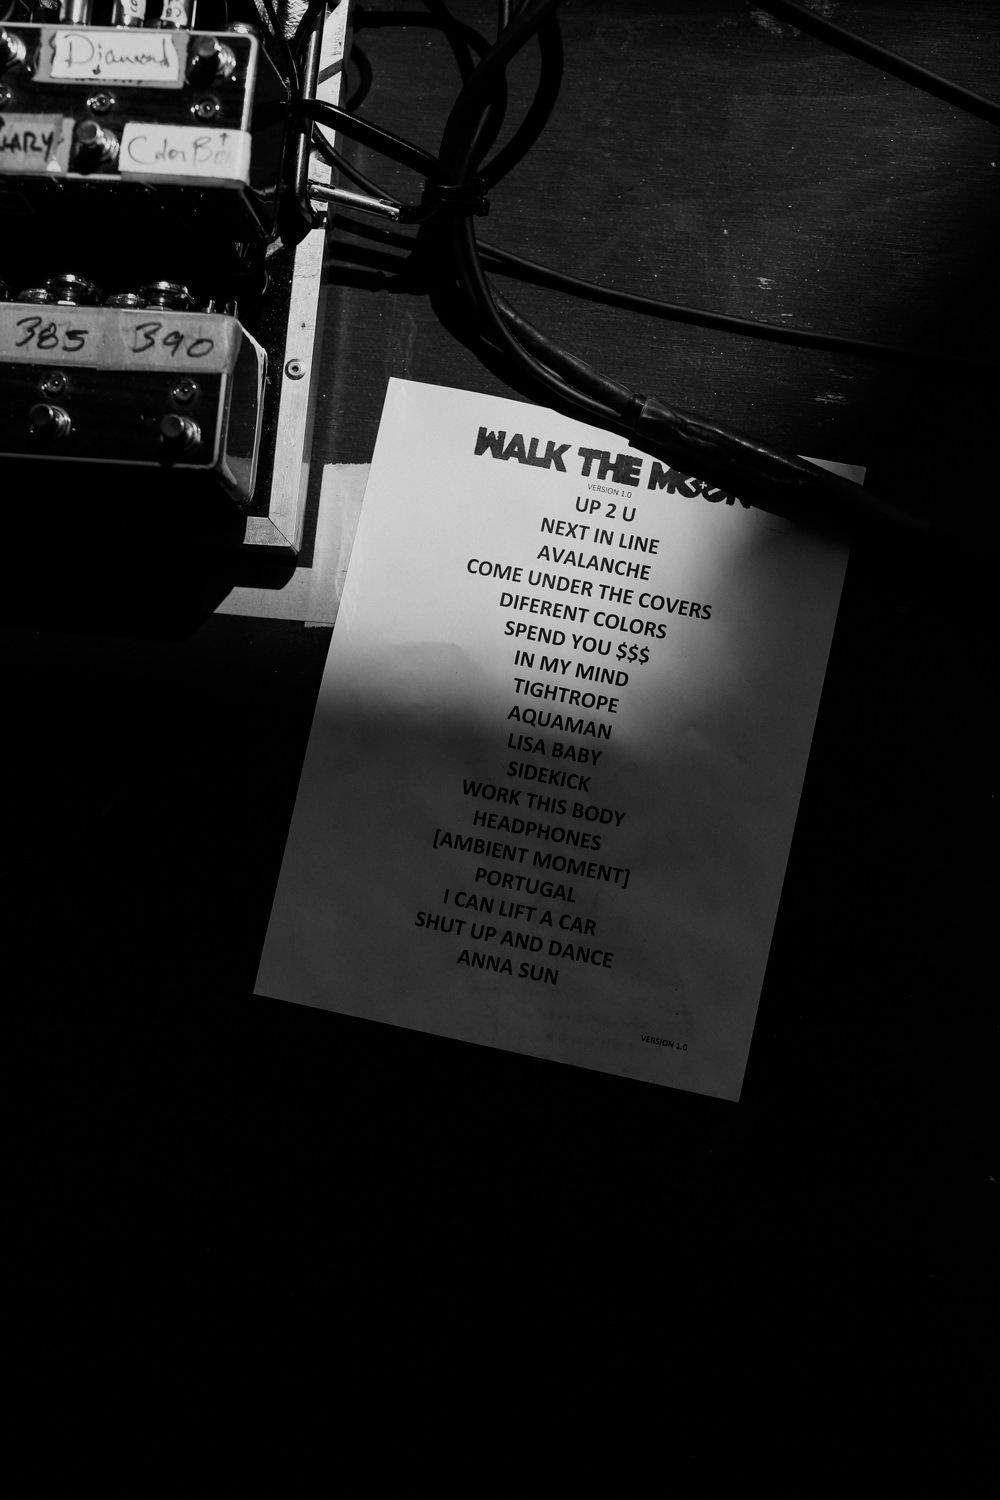 set-list-walk-the-moon-concert-AnnaLeeMedia